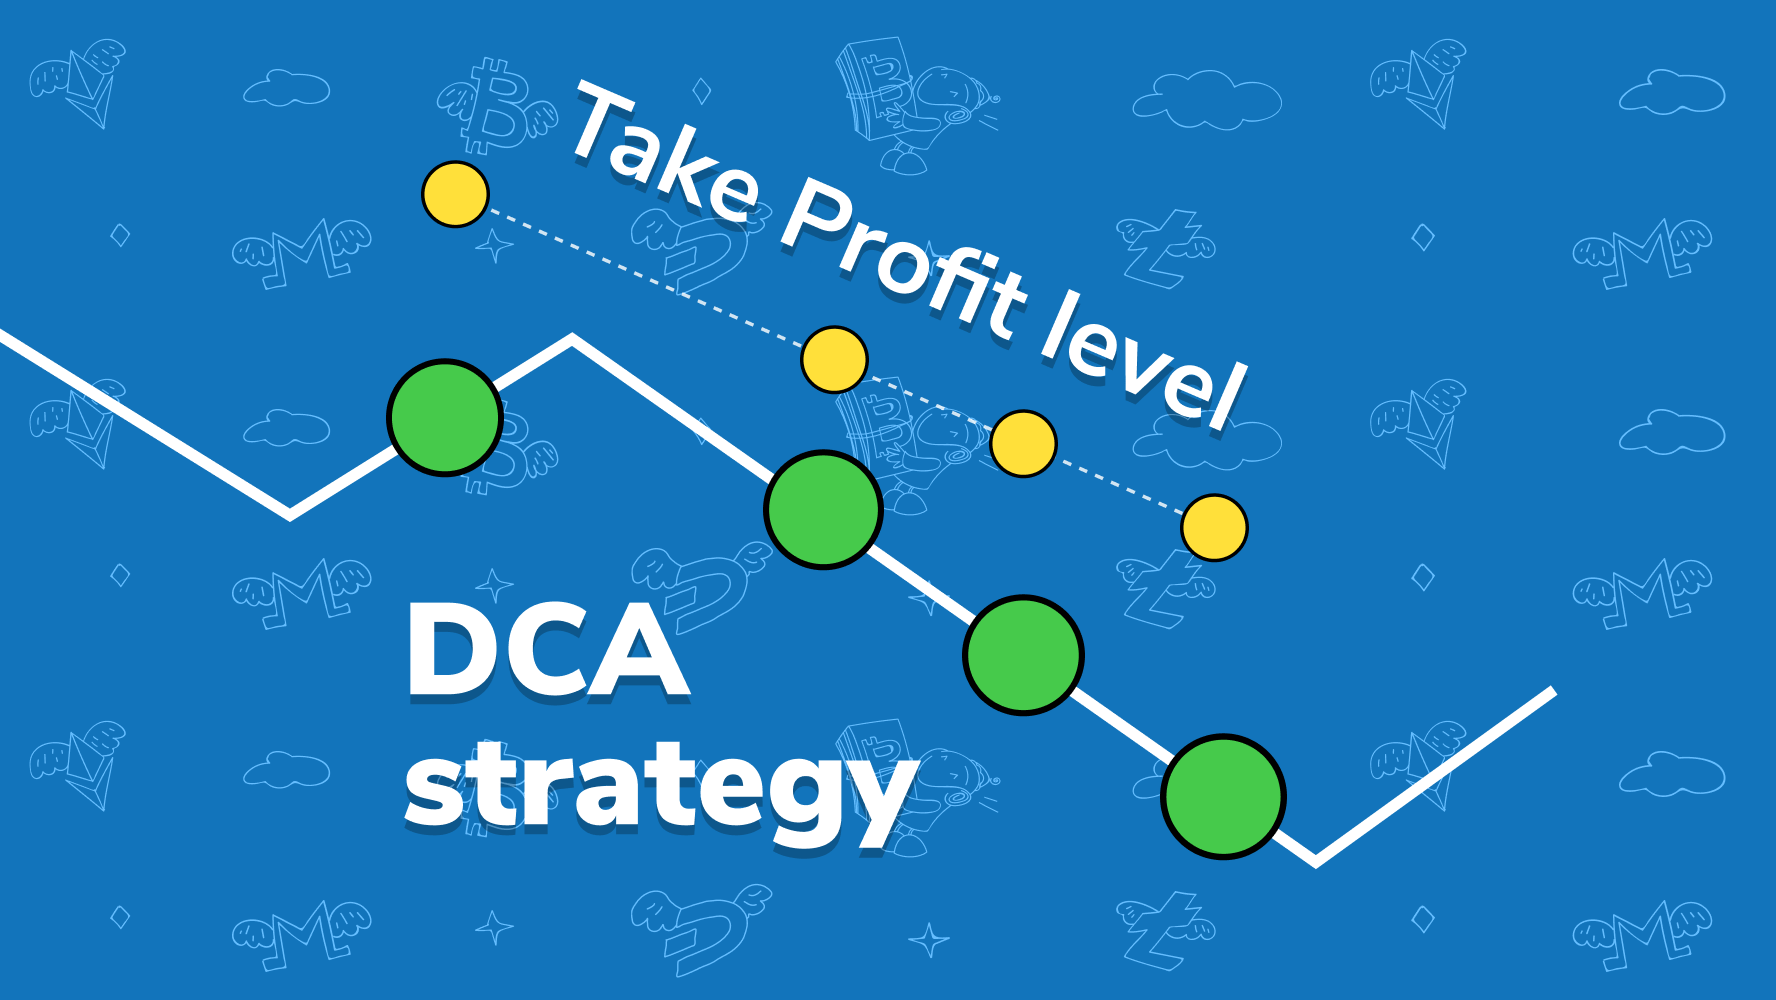 how to make money in stocks crypto trading dca